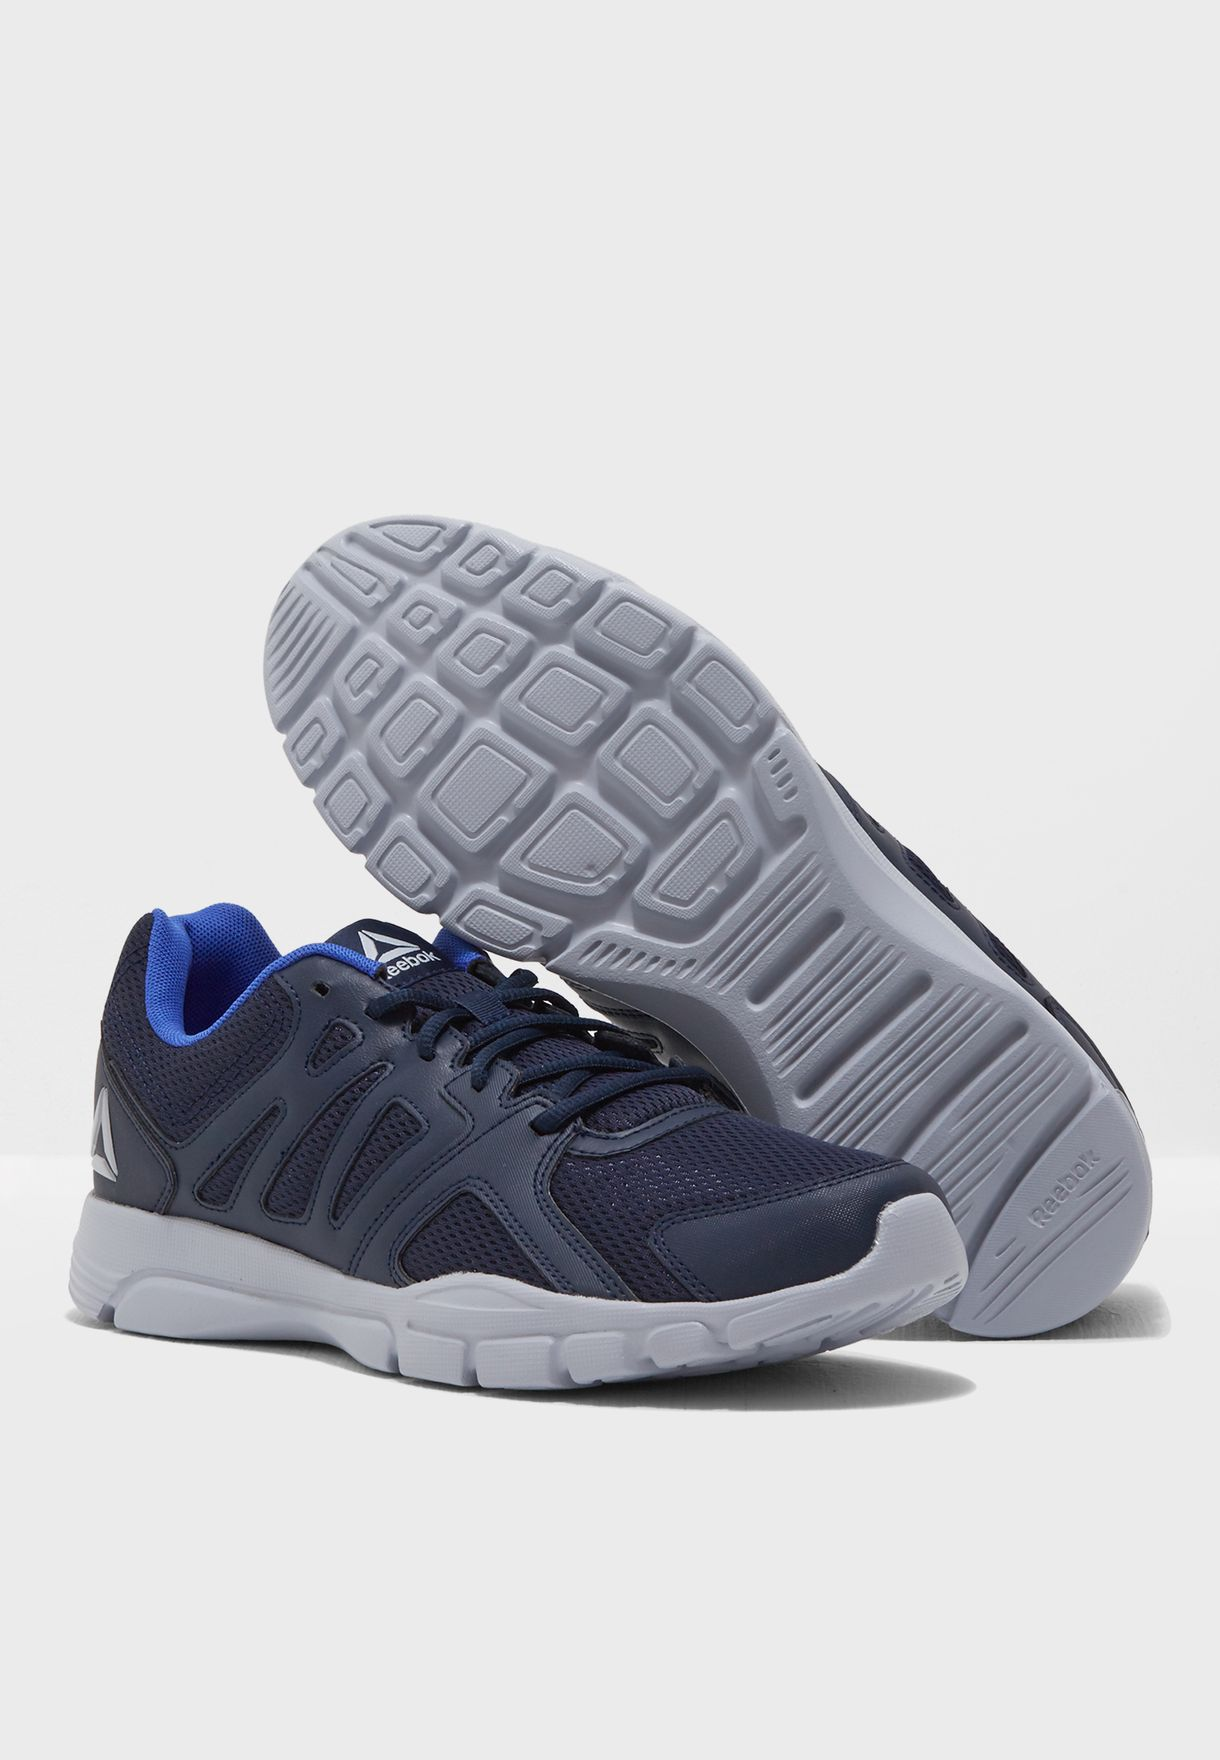 d37d2a9271a3f1 Shop Reebok navy Trainfusion Nine 3.0 CN0973 for Men in UAE ...